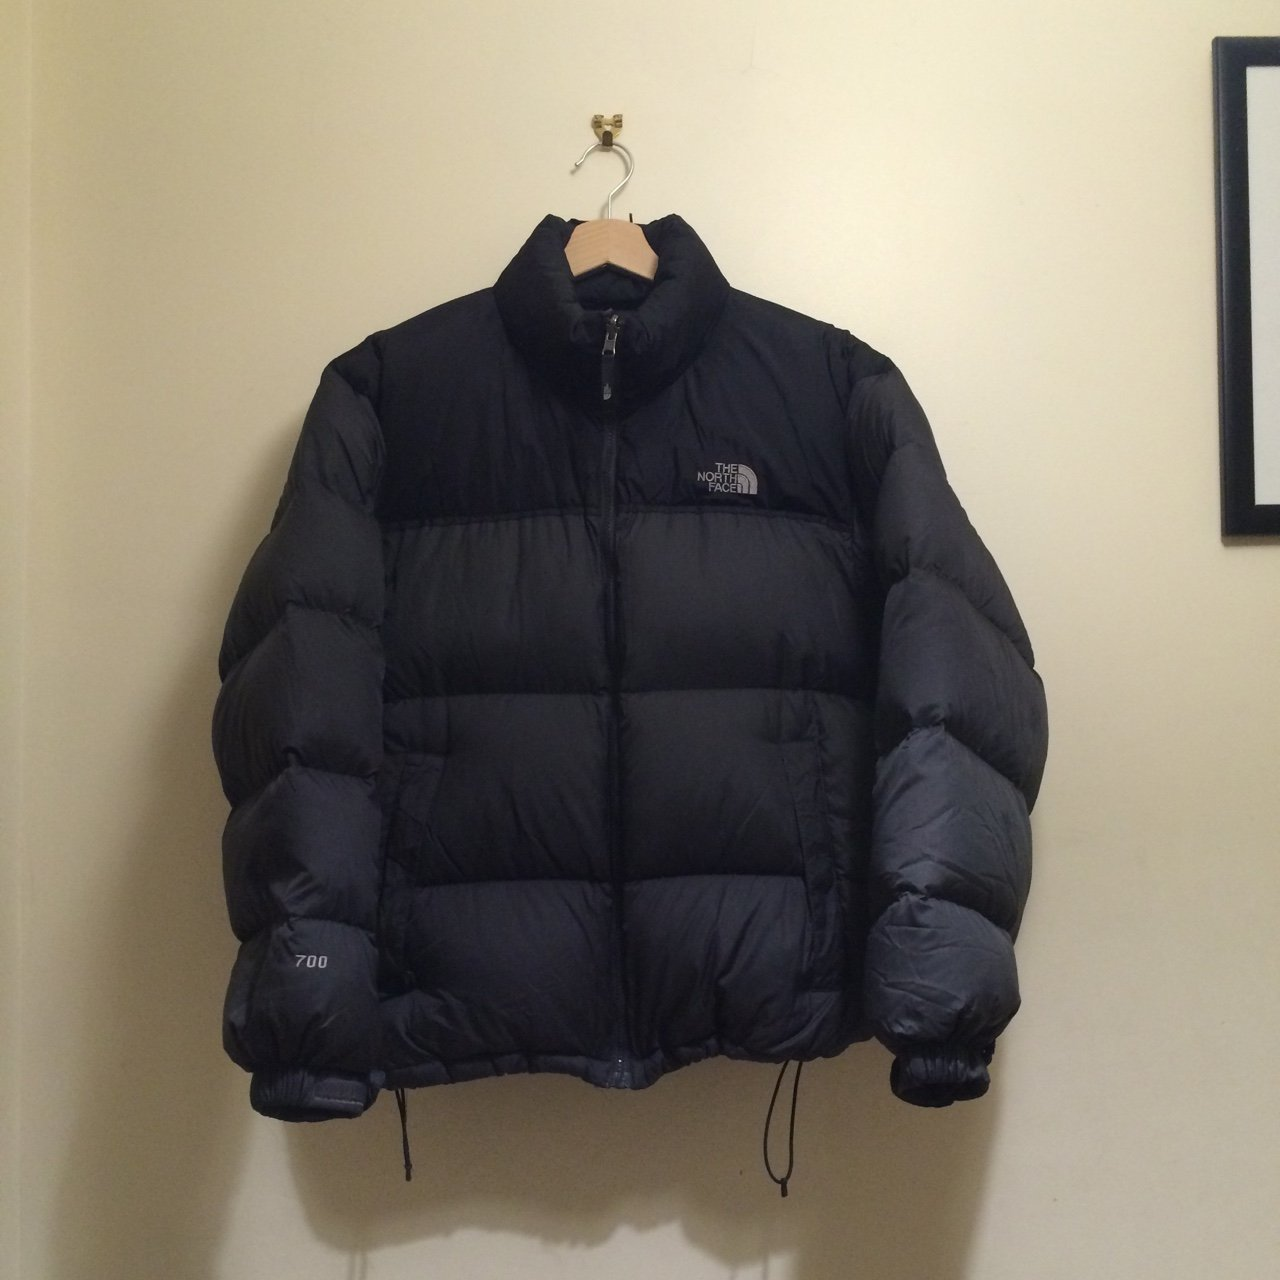 ... promo code for genuine the north face nuptse down 700 coat puffer  jacket depop fee08 36fb1 5ce8486fb